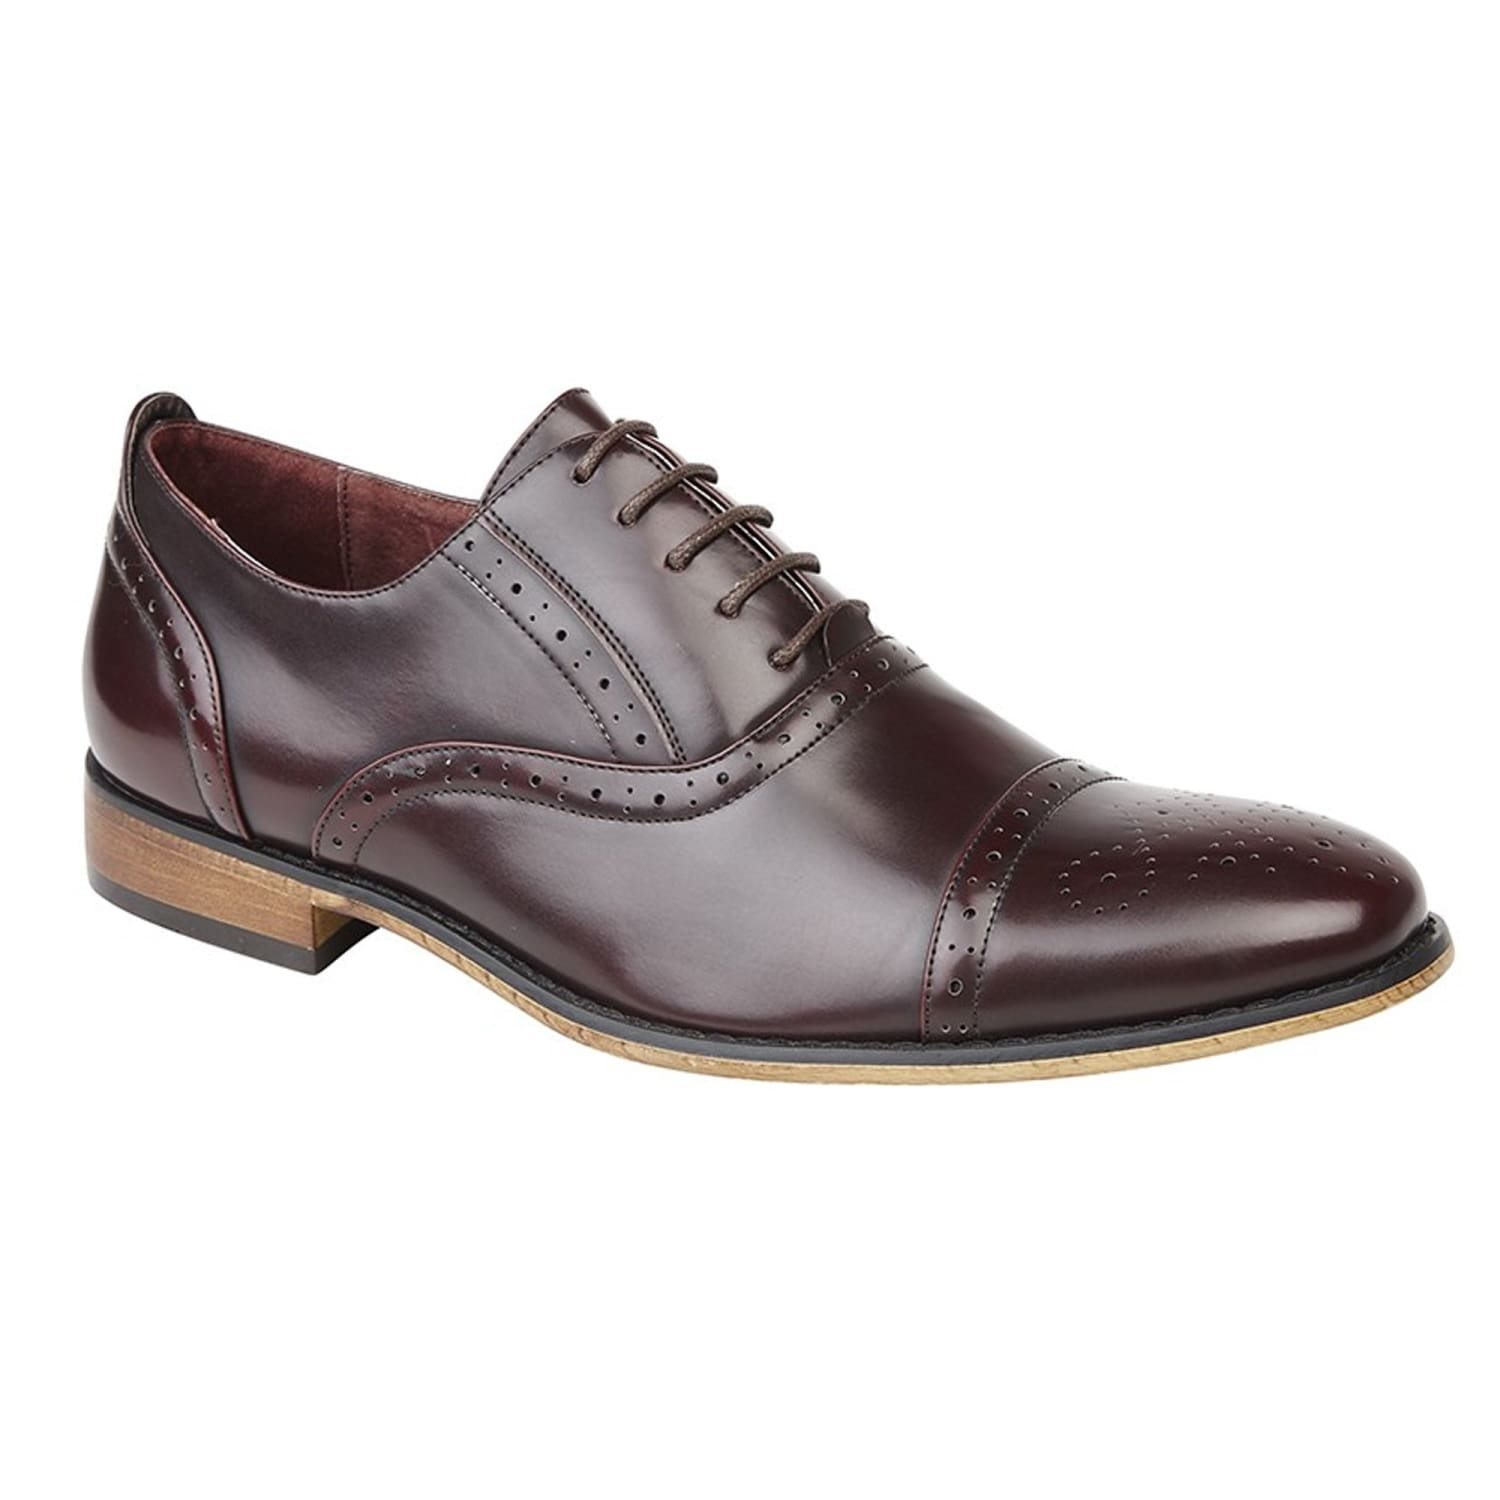 Goor Shoes - M516 - Ox Blood 1